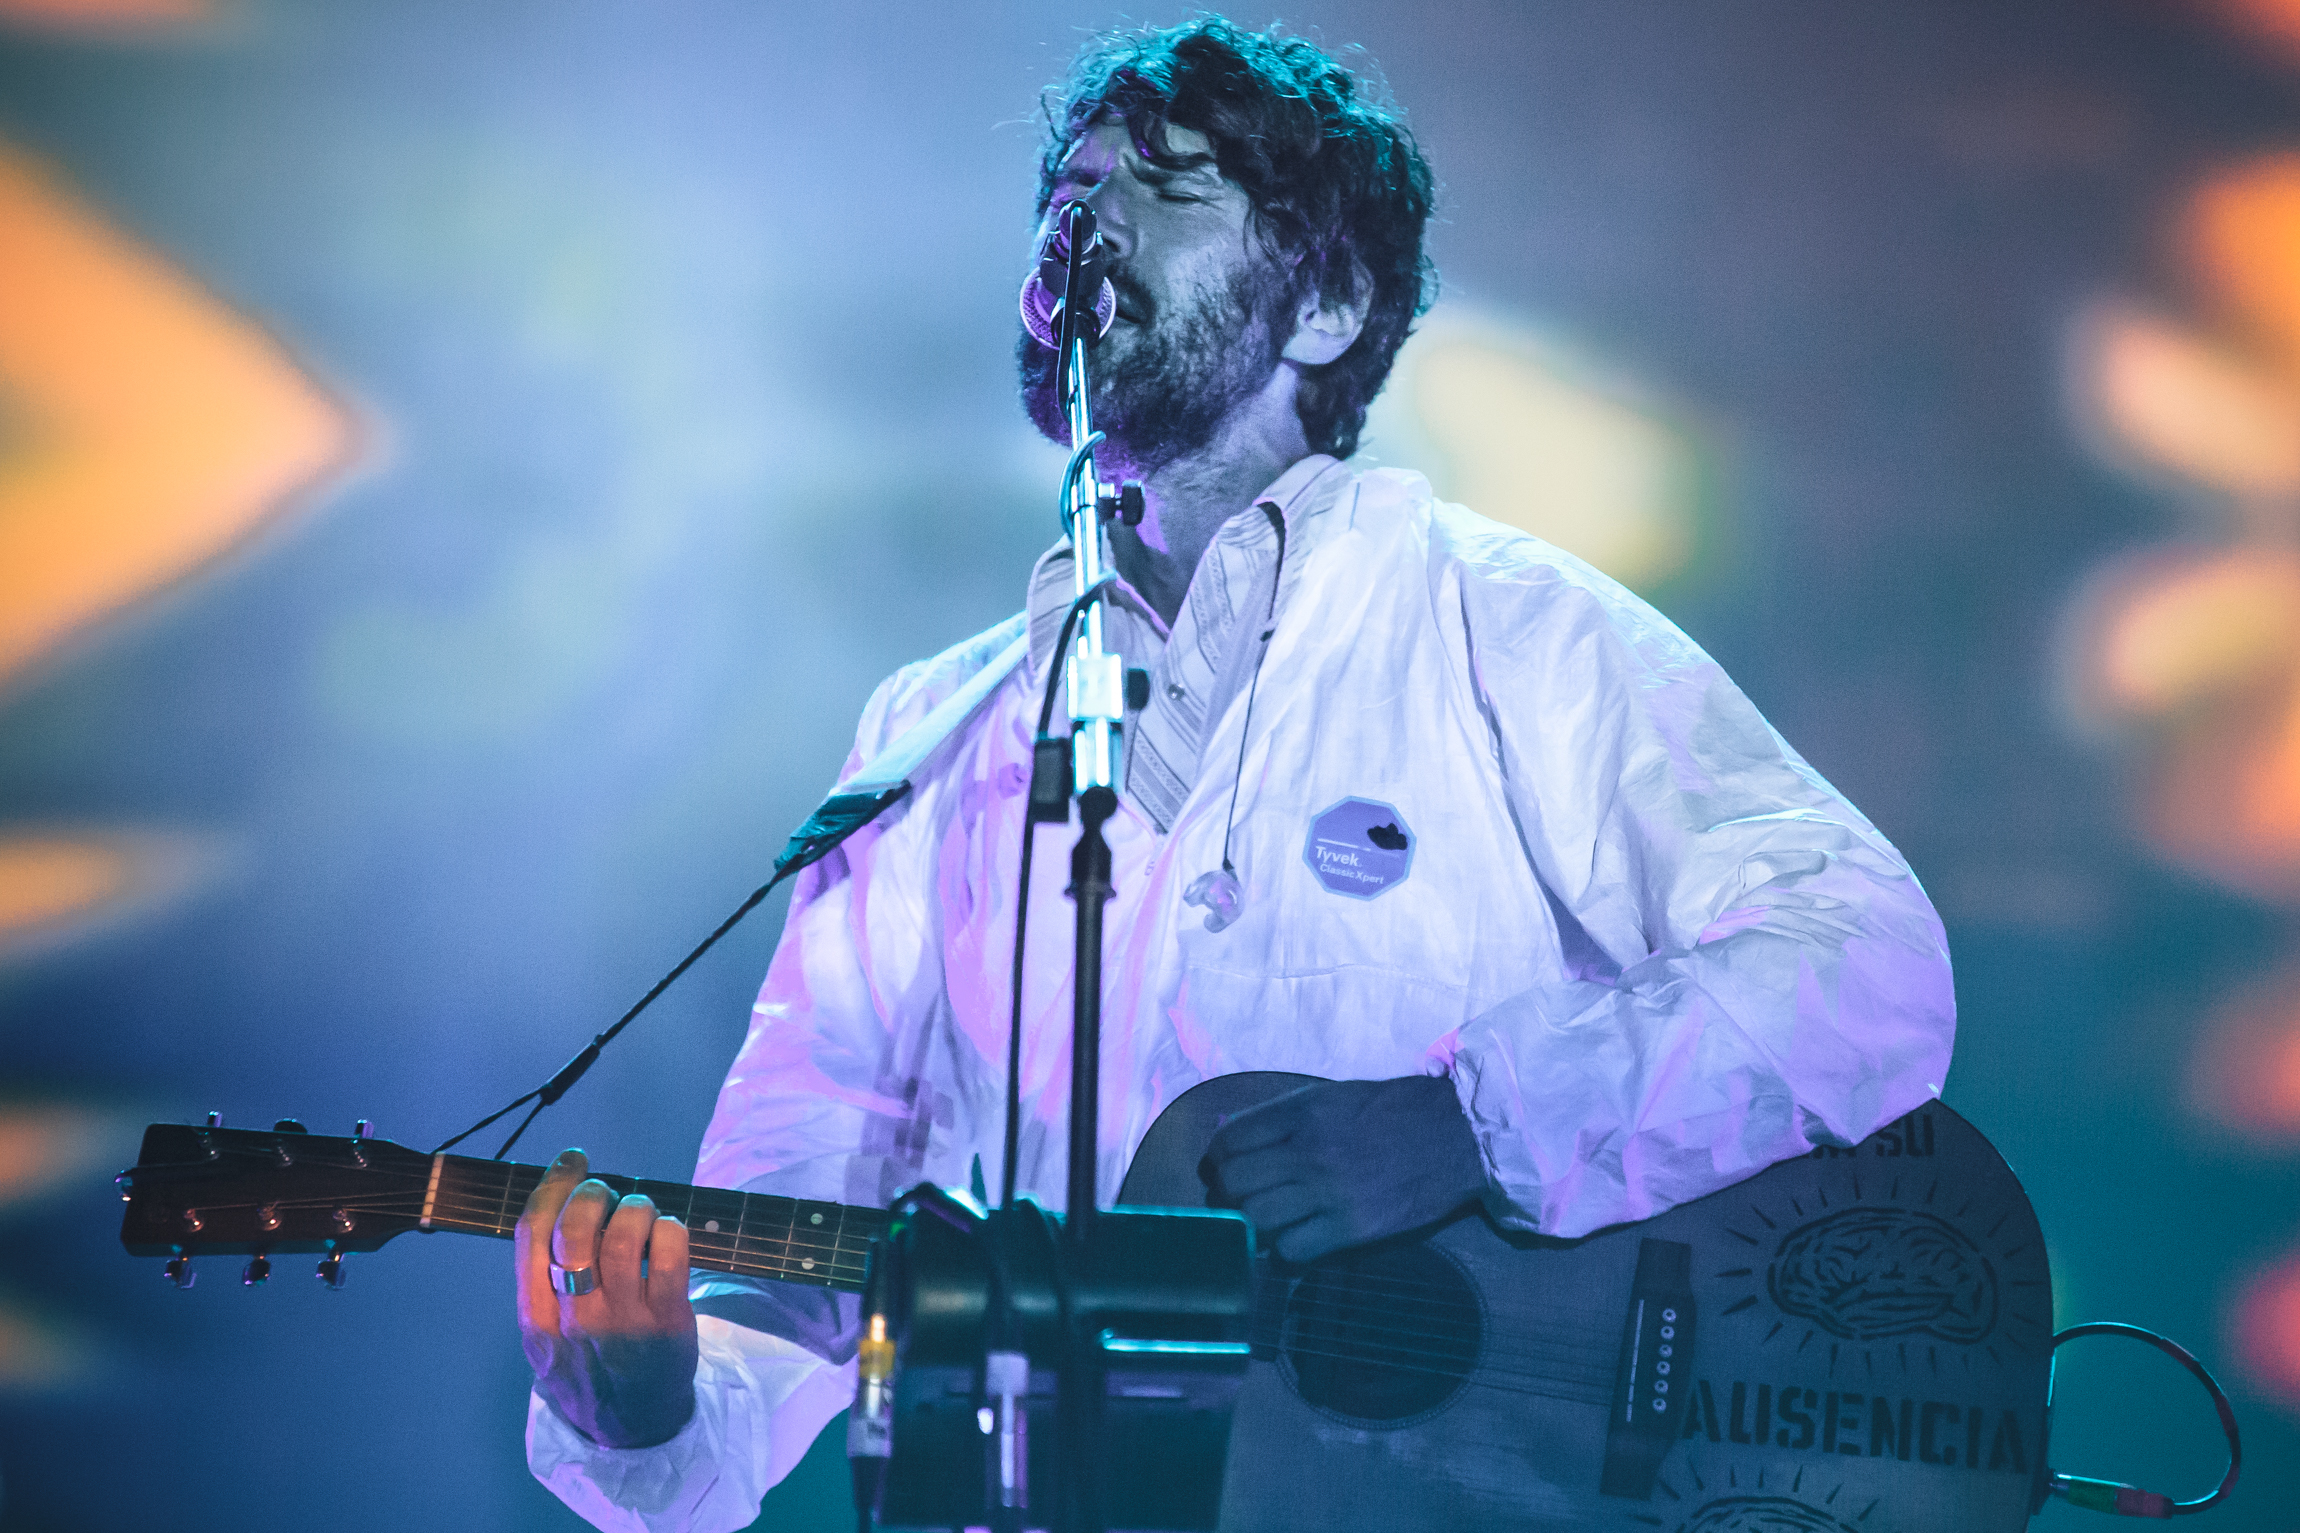 NEWS: Campaign to get Super Furry Animals 'The Man Don't Give A F*ck' into the charts launched